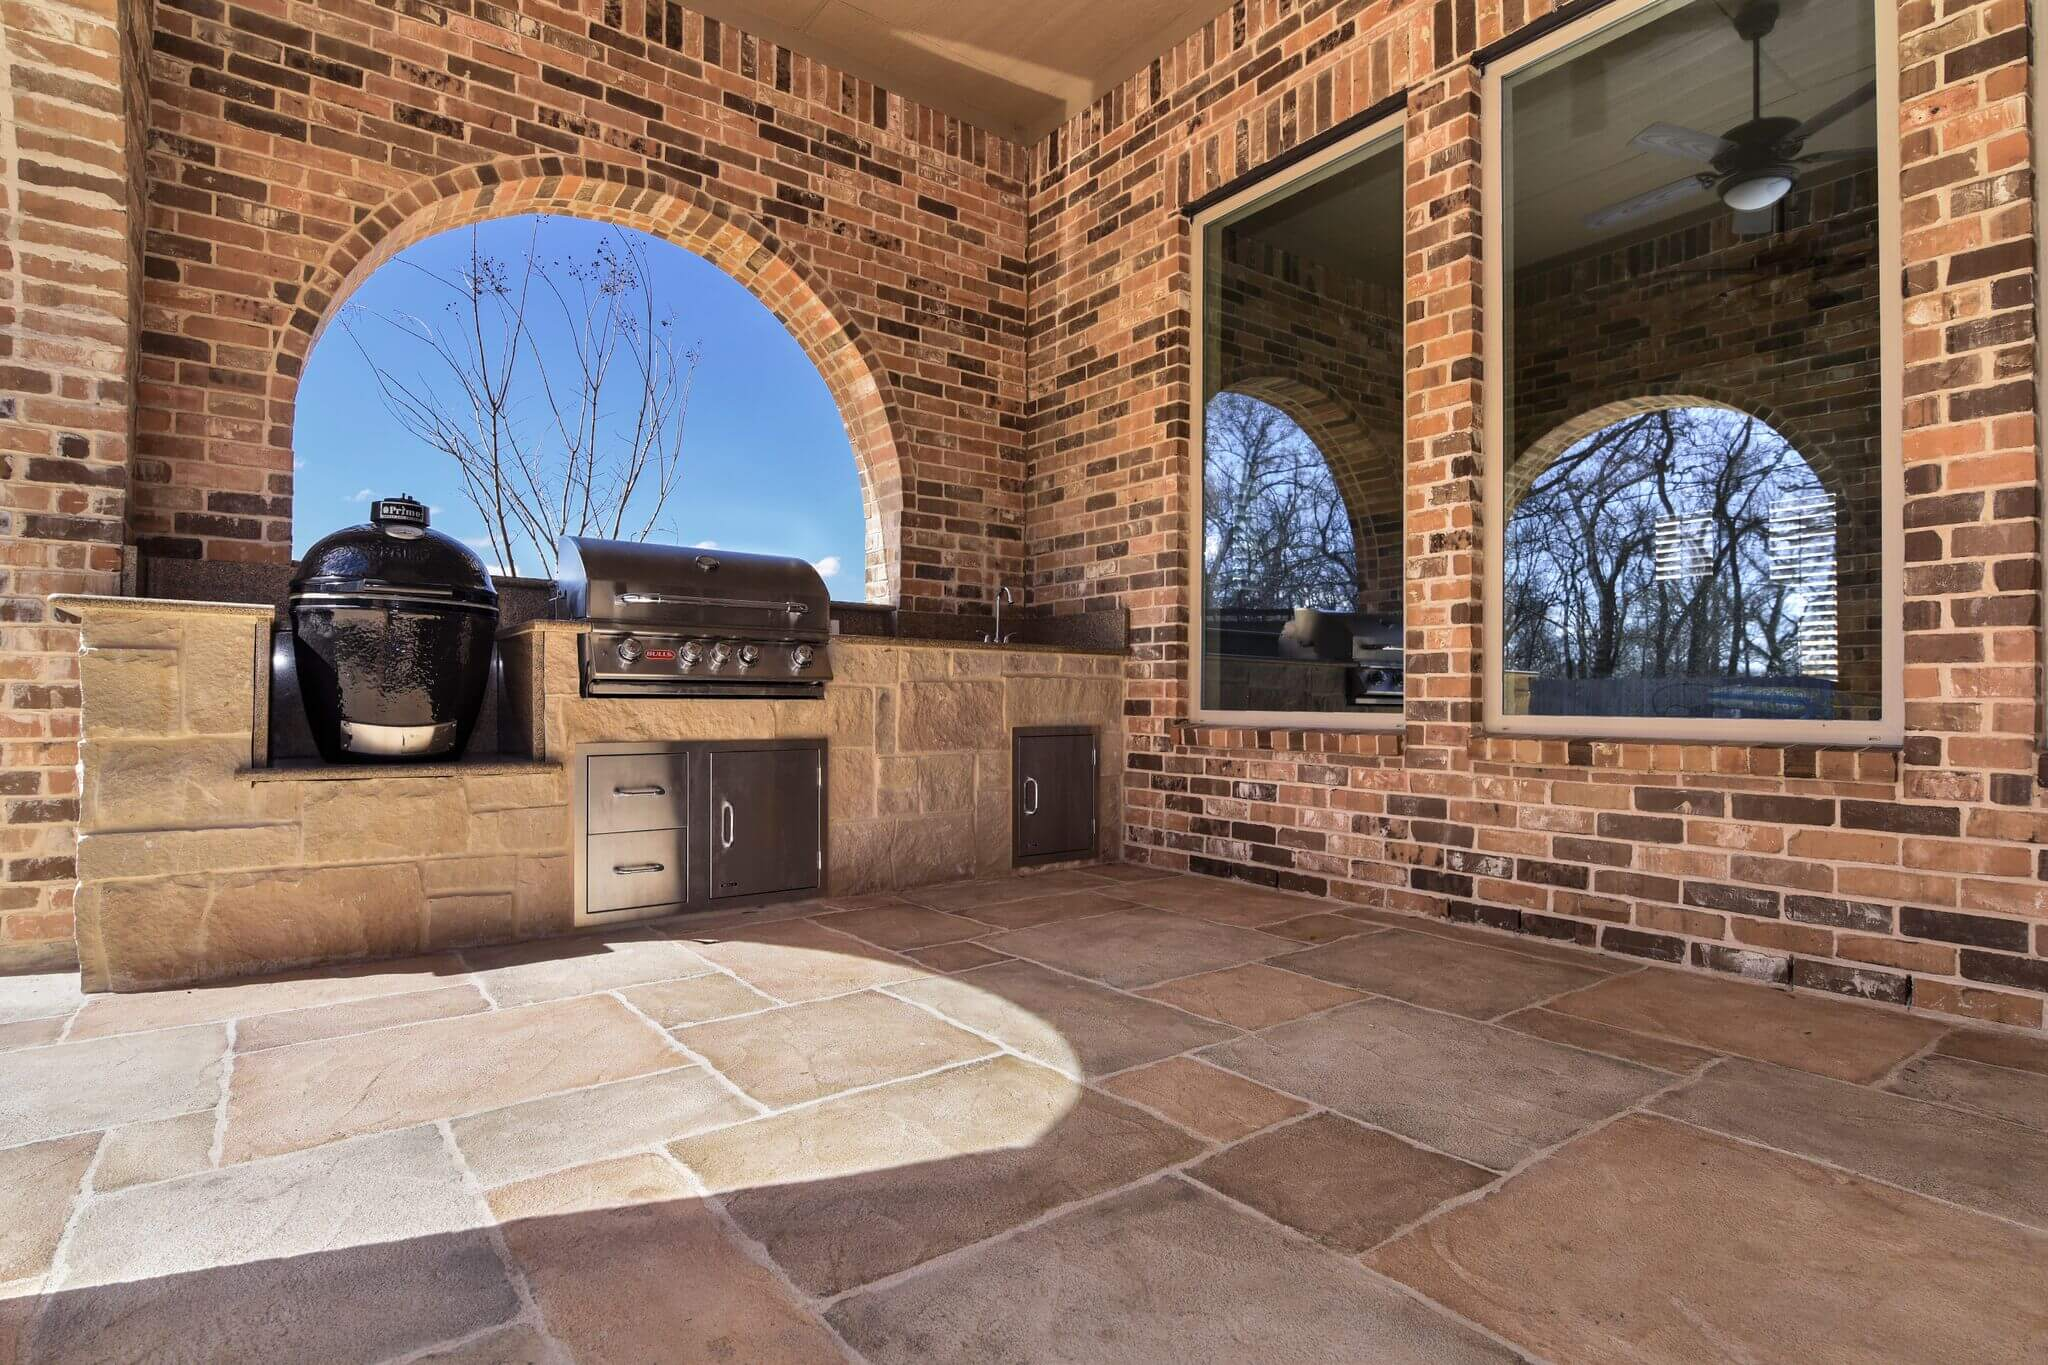 Beautiful Allied Outdoor Solutions Allied Outdoor Solutions Can Help Your Pergola Outdoor Allied Outdoor Solutions Complaints Allied Outdoor Solutions Grapevine Tx houzz-03 Allied Outdoor Solutions